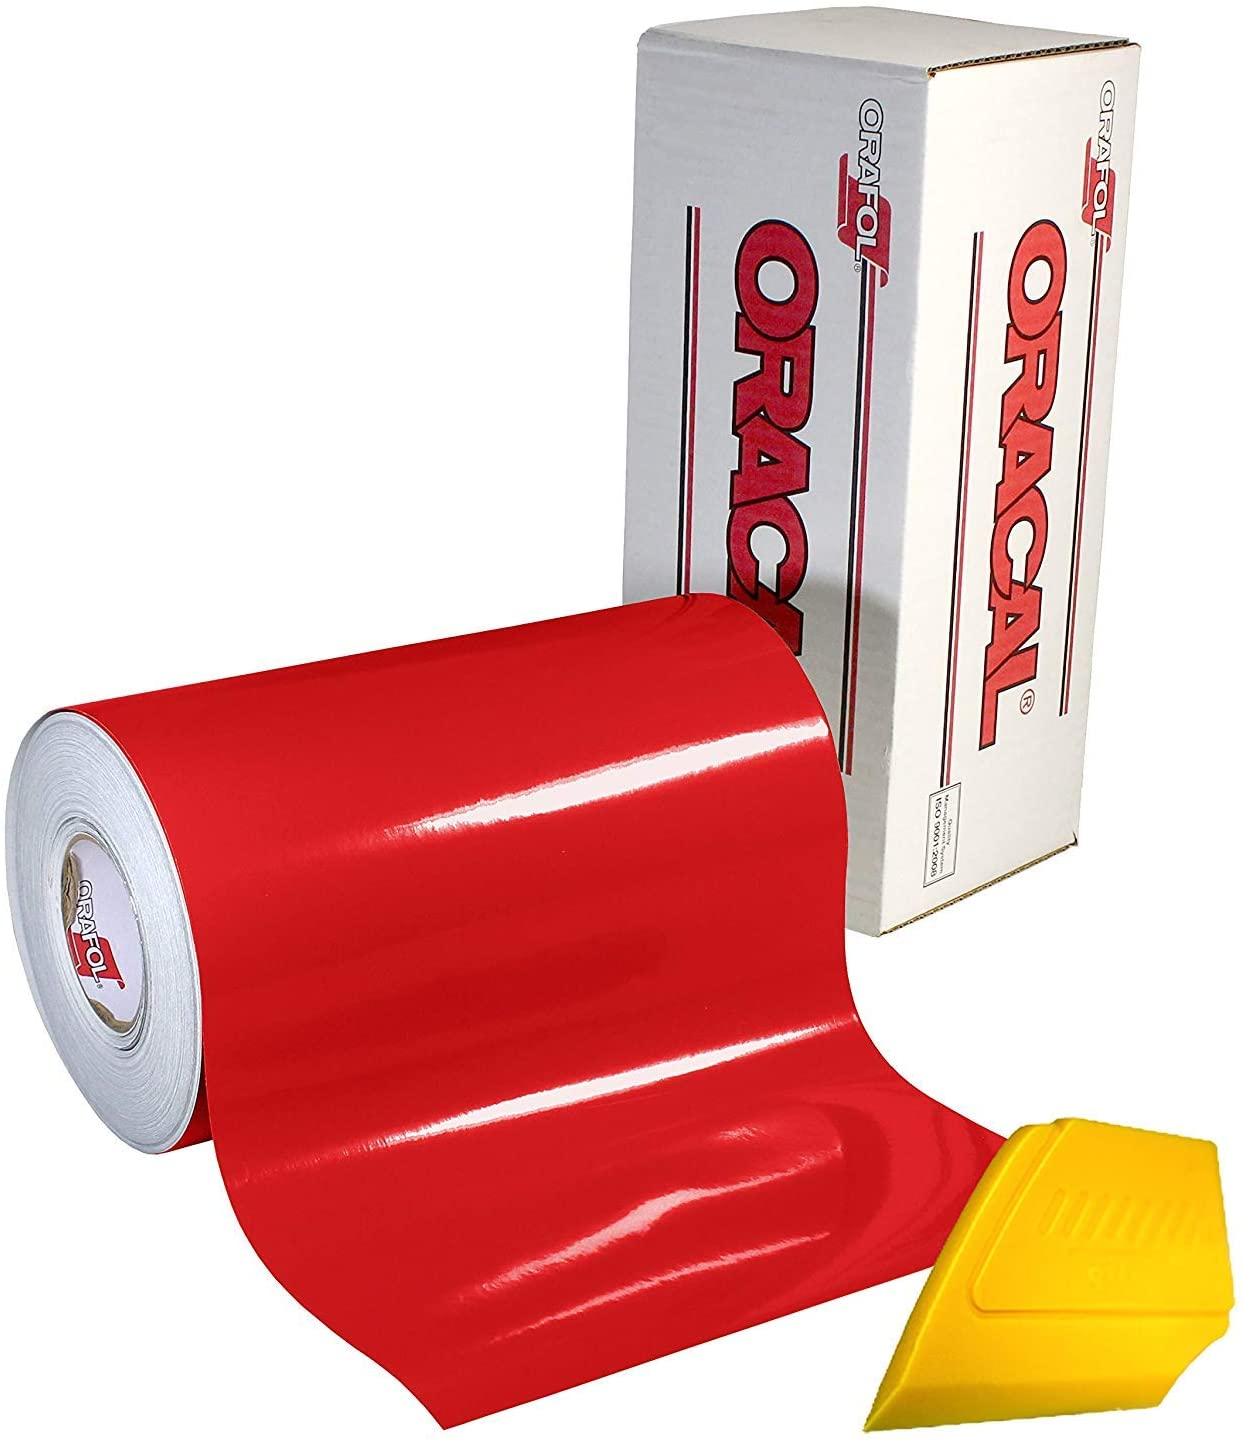 ORACAL 651 Gloss Red Adhesive Craft Vinyl 12 Inches x 6.5 Feet Large Roll Including Detailer Squeegee